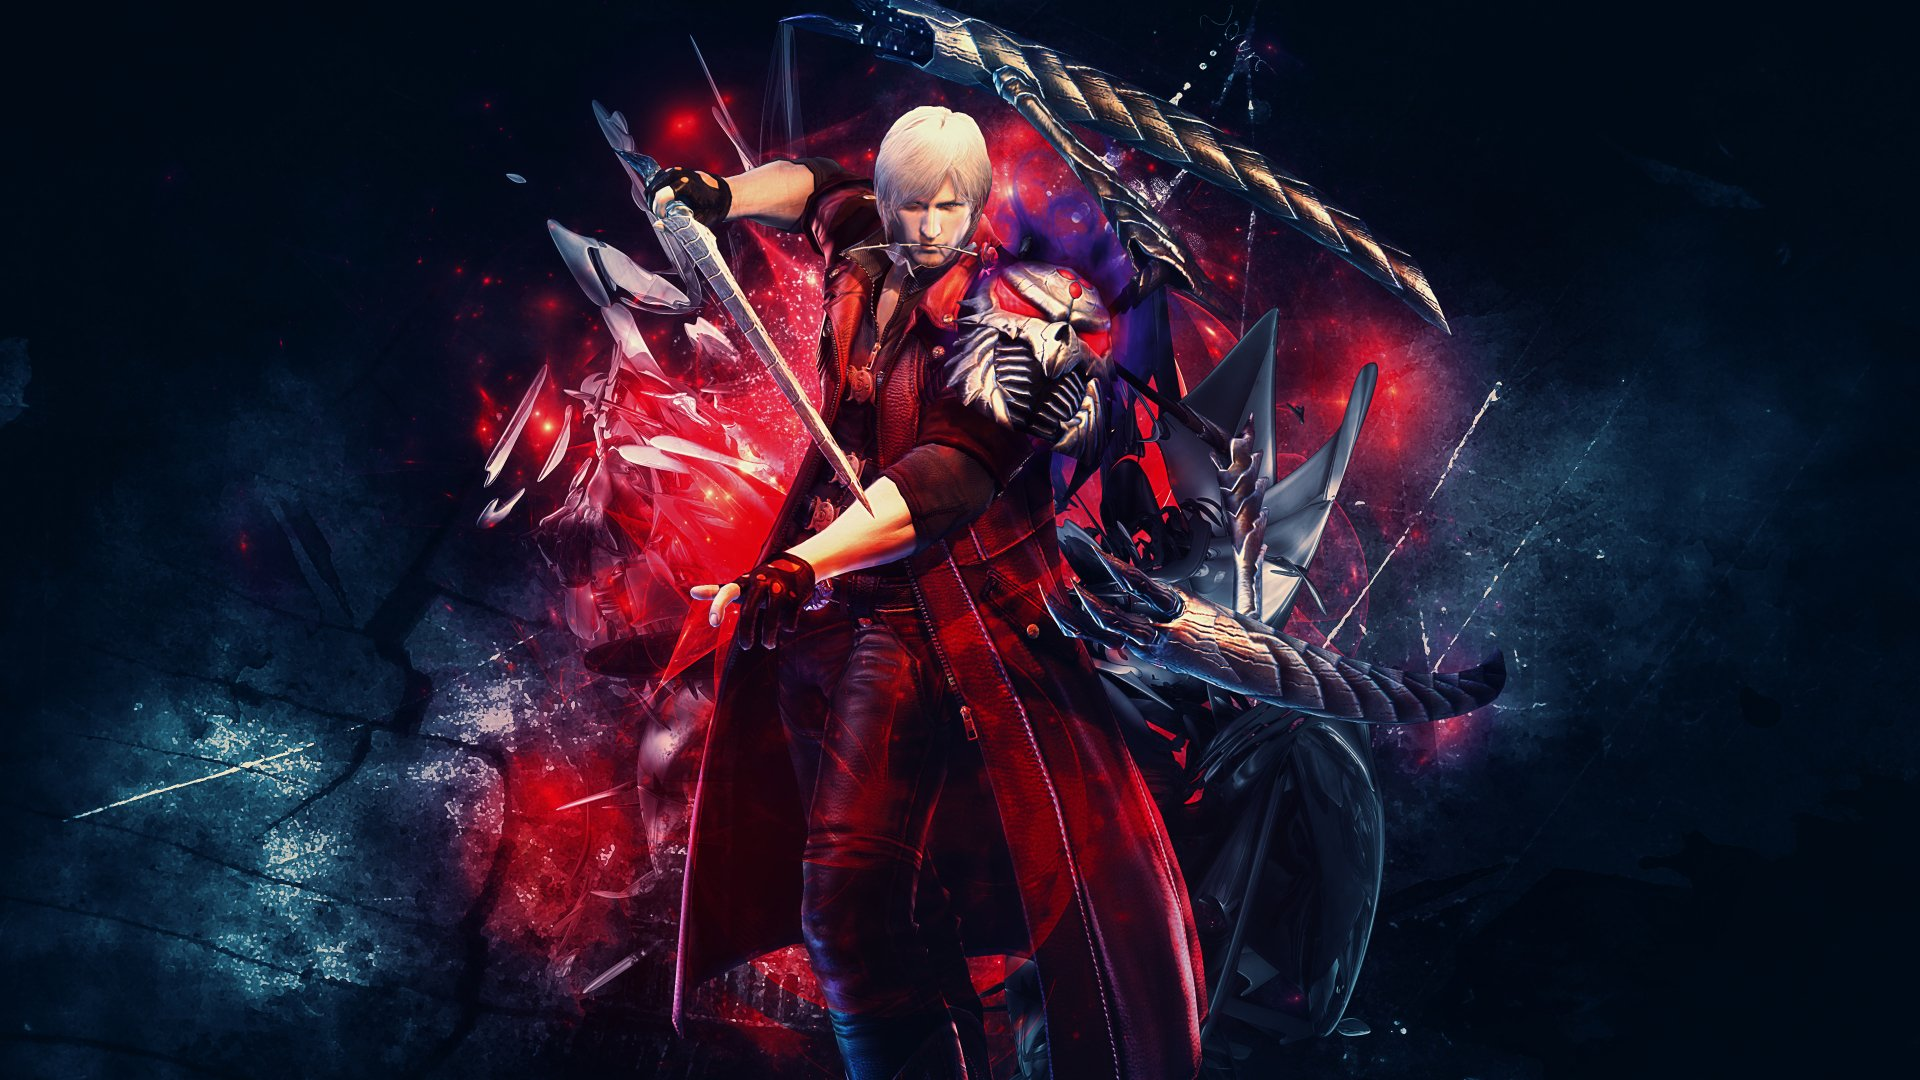 Devil May Cry 4 4k Ultra HD Wallpaper | Background Image ...